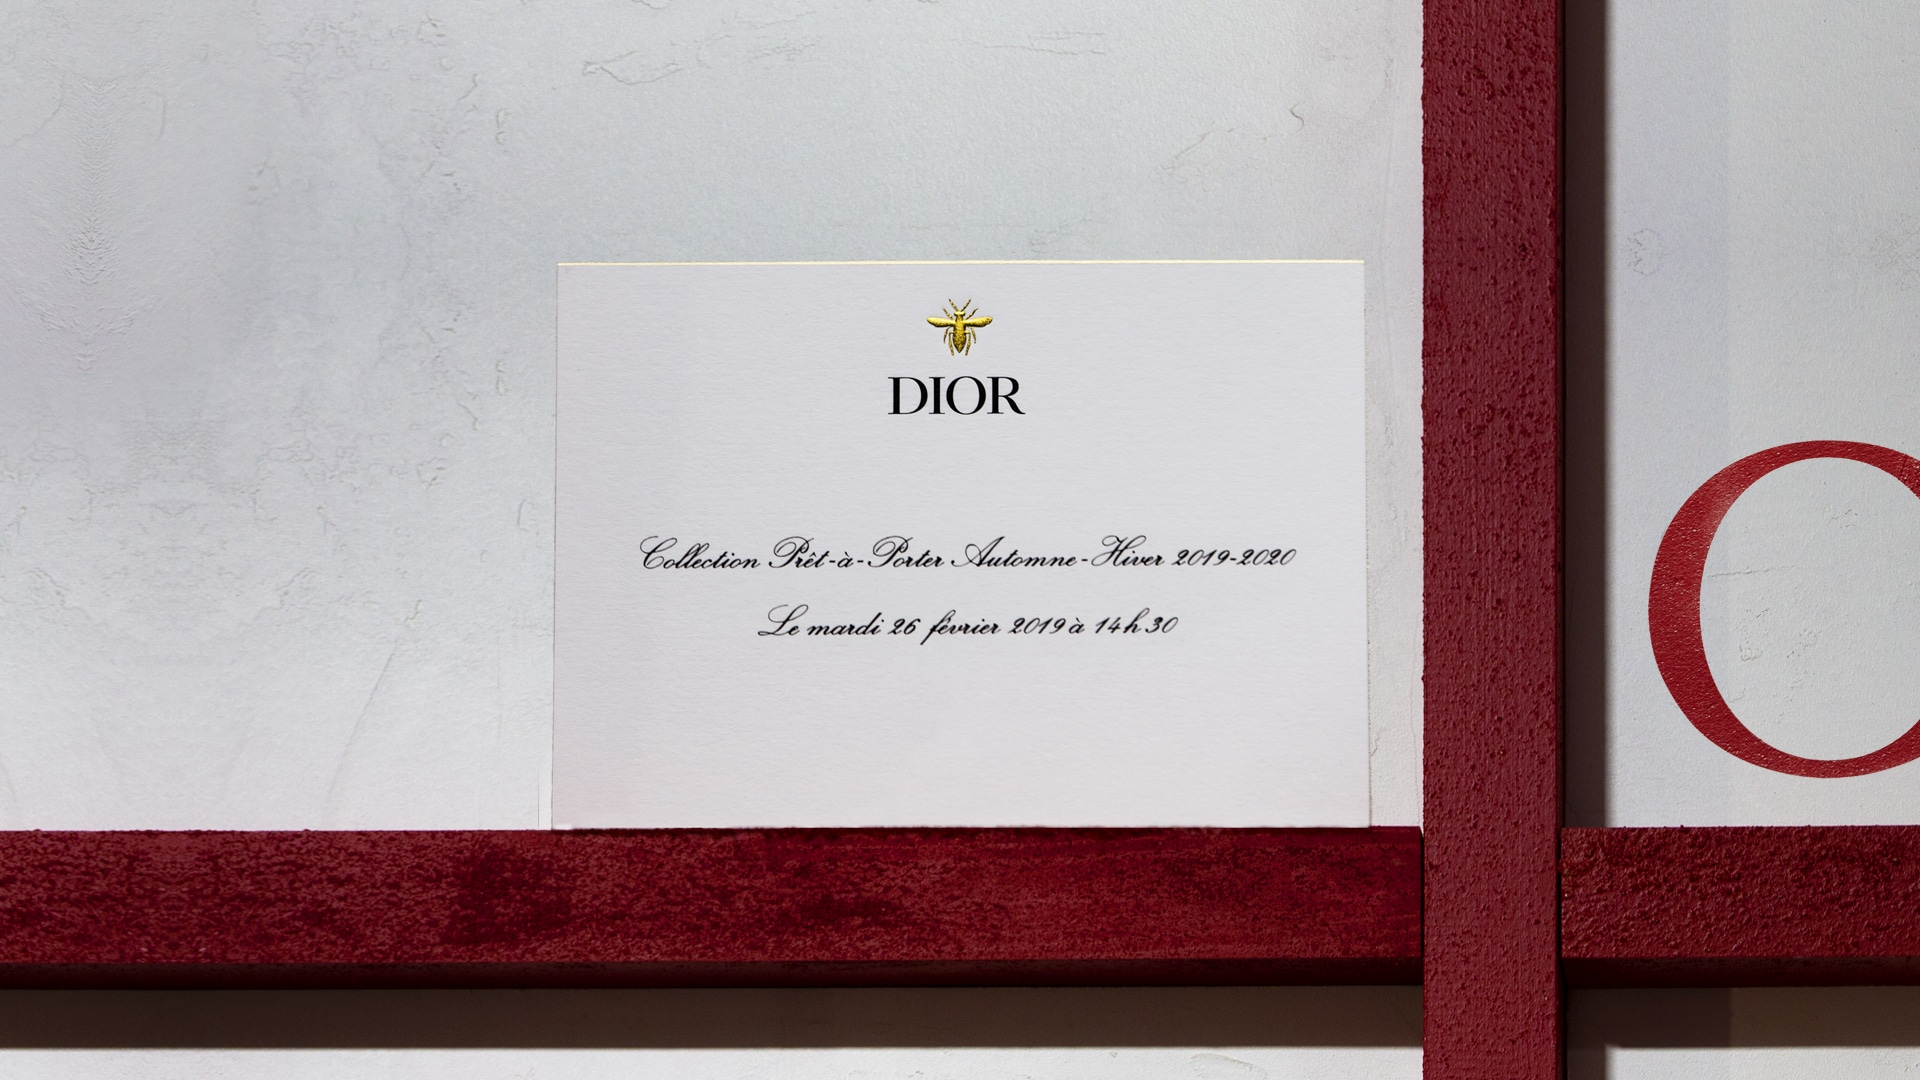 Watch: Dior's Fall/Winter 2019 ready-to-wear collection live from Paris Fashion Week